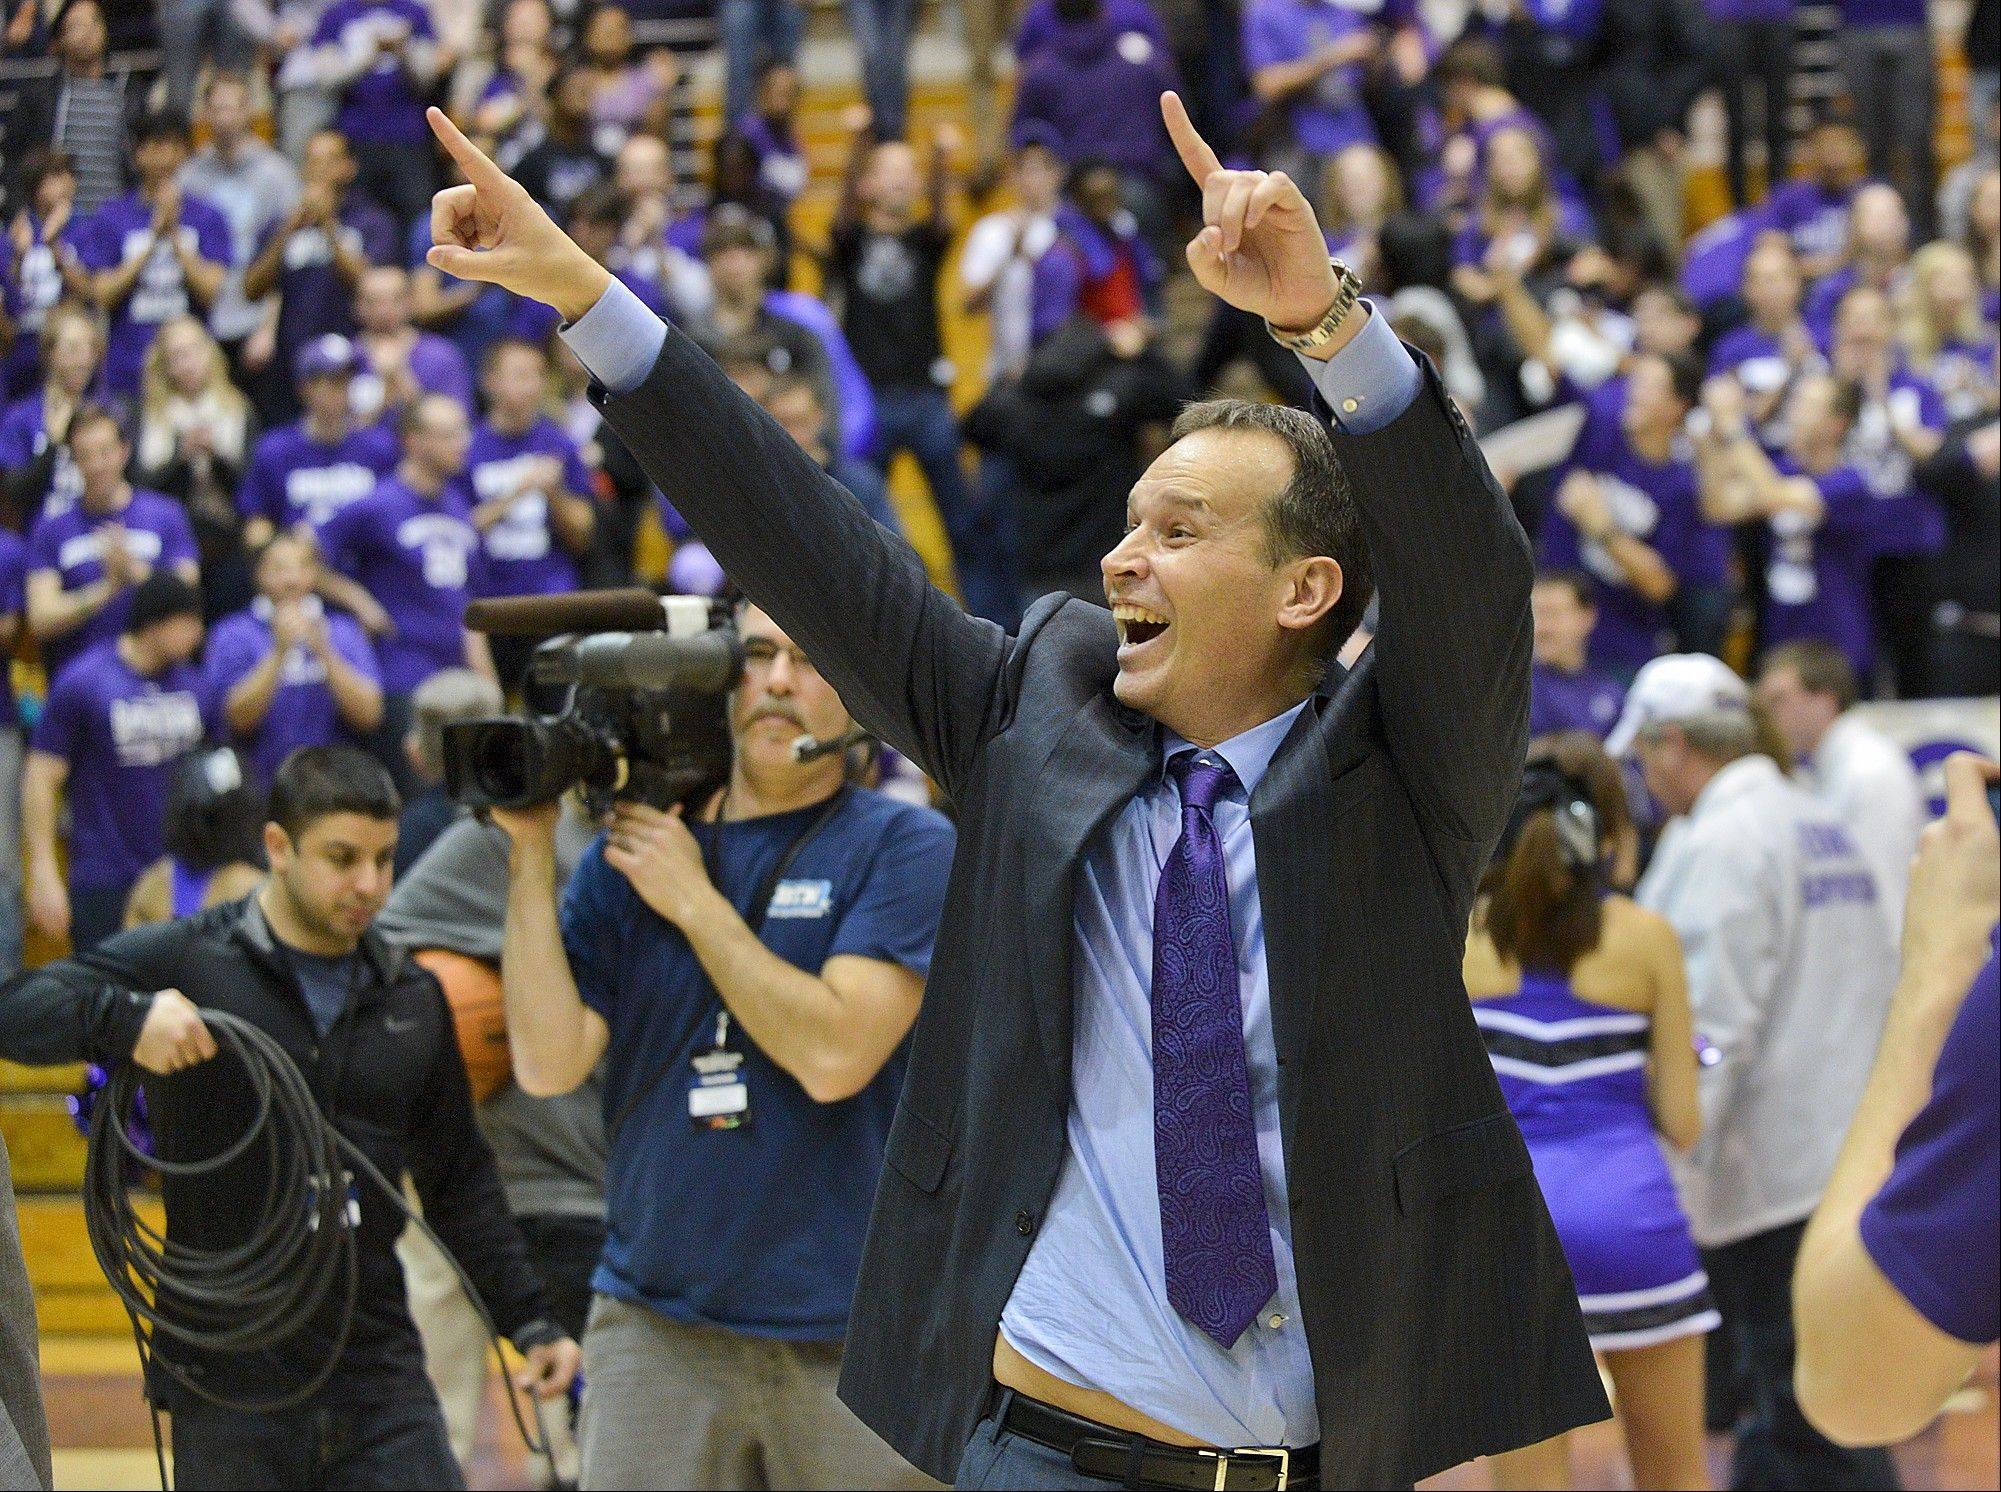 Northwestern head coach Chris Collins yells after his team beat Illinois 49-43 during an NCAA college basketball game in Evanston, Ill., on Sunday, Jan. 12, 2014.